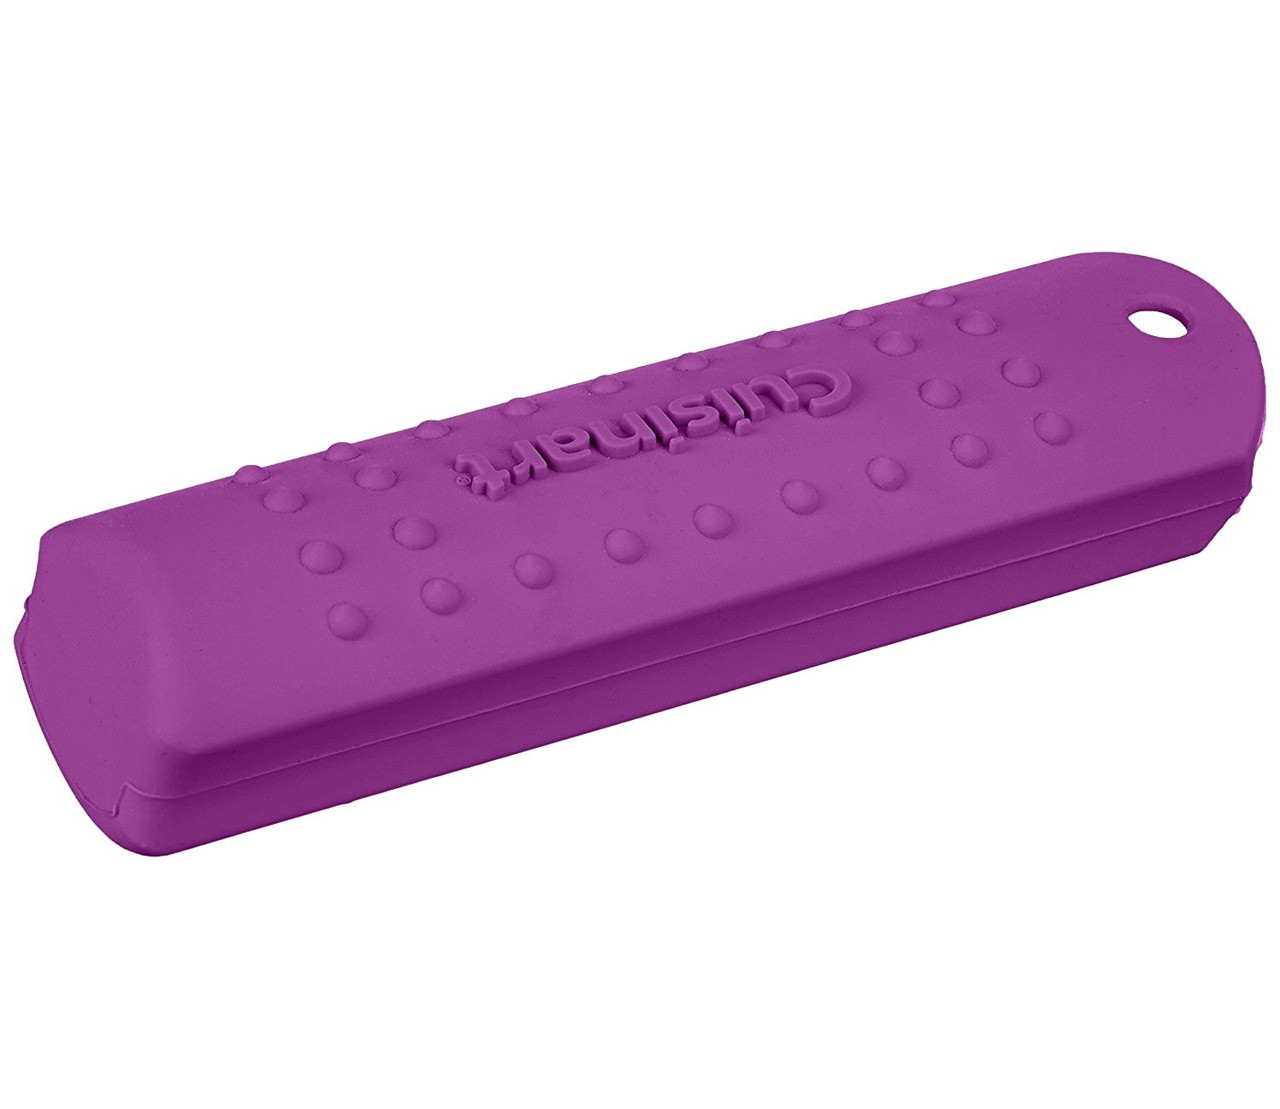 https://d3d71ba2asa5oz.cloudfront.net/23000296/images/cuisinart-silicone-sleeve-purple-2pk-casku19842-2.jpg